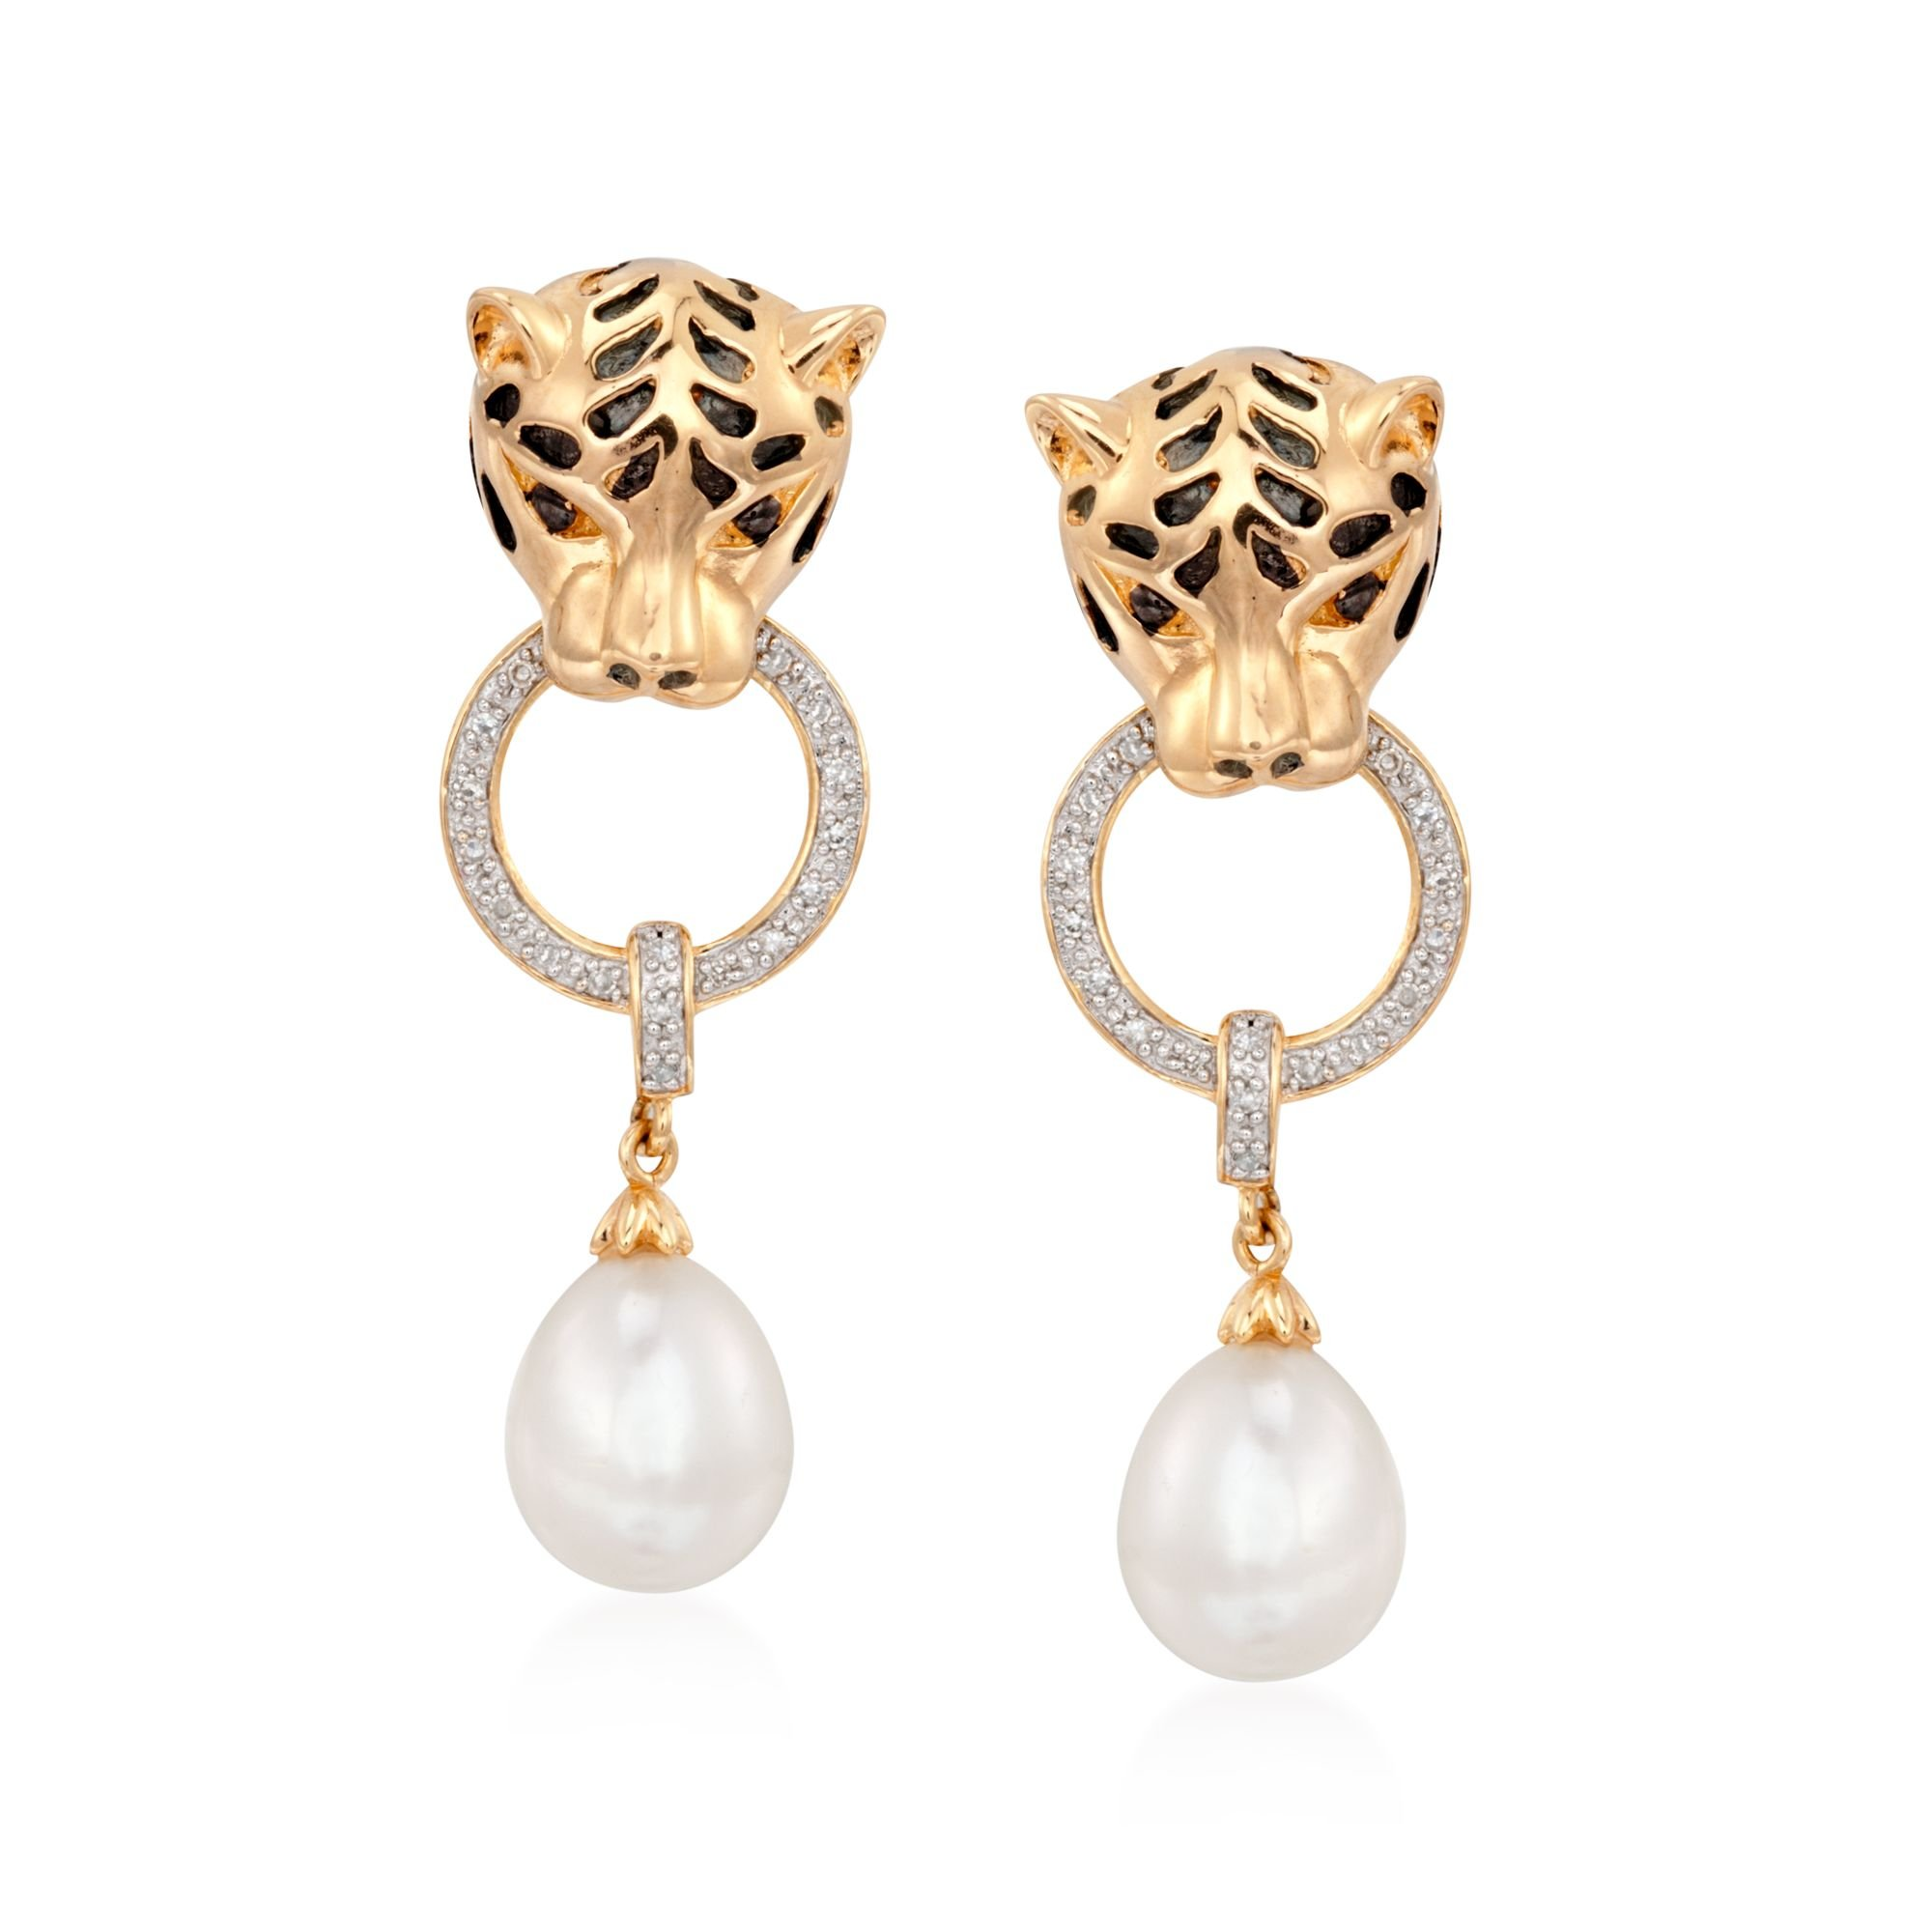 Ross-Simons 8.5-9mm Cultured Pearl and .10 ct. t.w. Diamond Panther Earrings in 18kt Gold Over Sterling